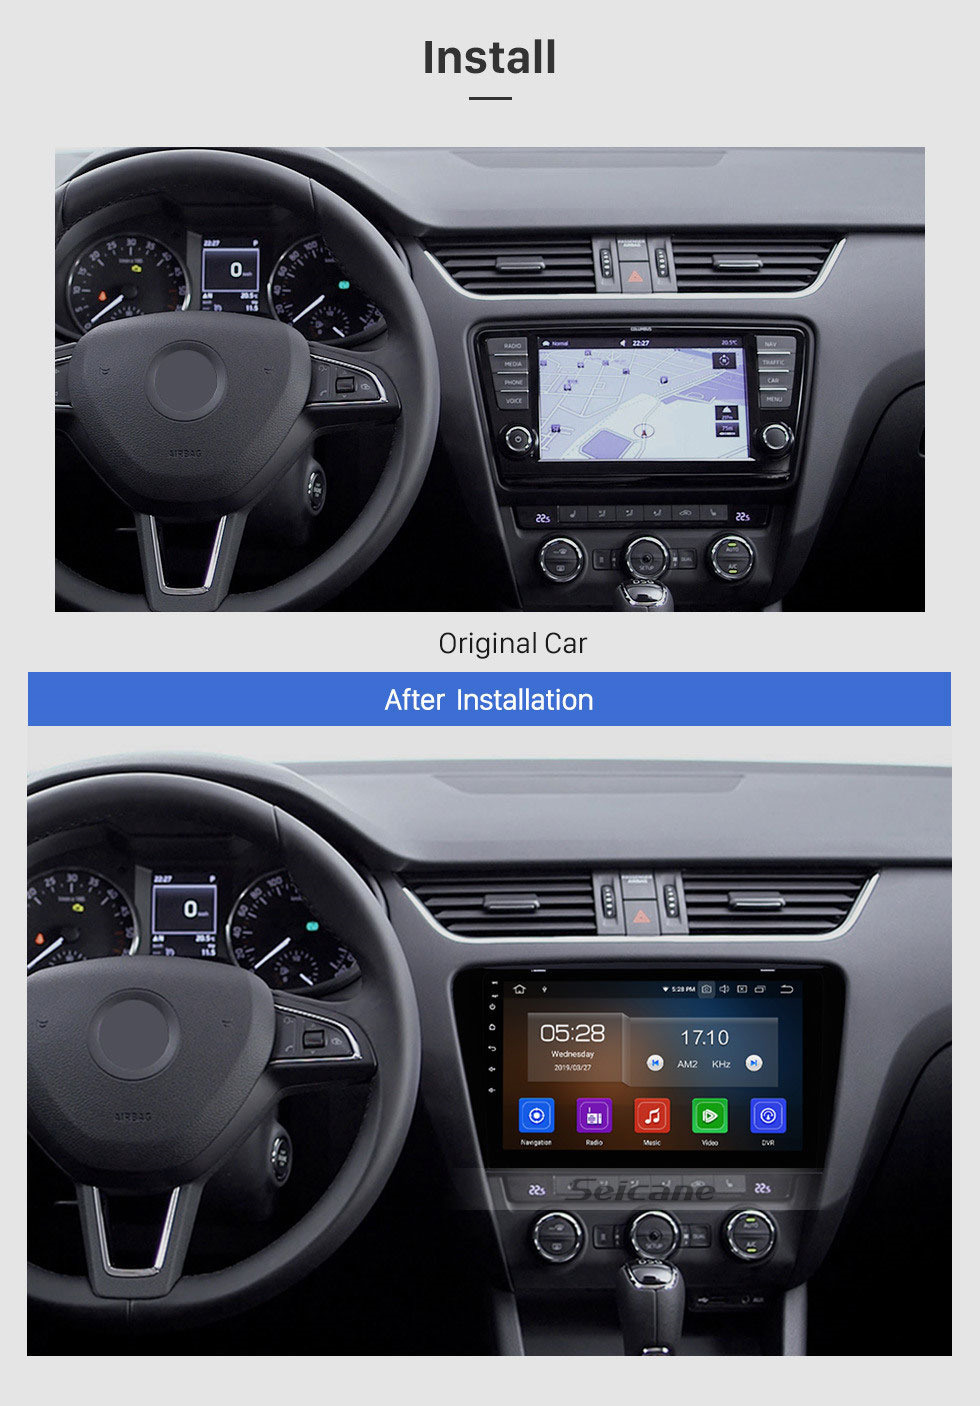 Seicane OEM 10.1 inch 2015 2016 2017 SKODA Octavia (UV) HD Touchscreen Android 10.0 auto stereo GPS Navigation System For  Support Bluetooth 3G/4G WIFI USB DVR OBD2 Rear View Camera